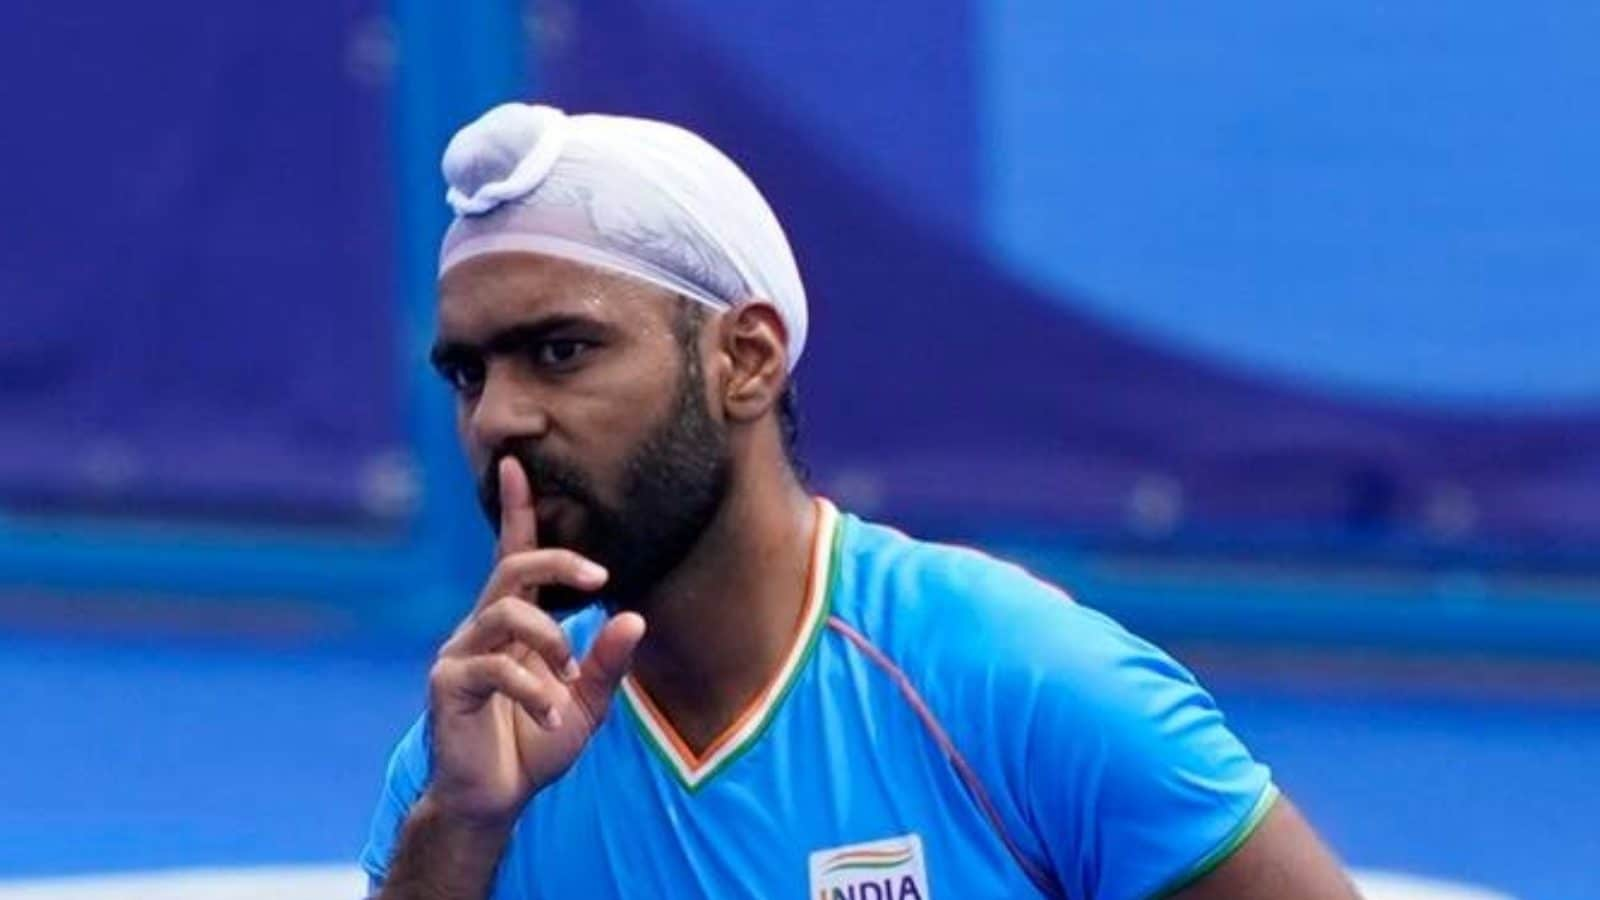 Used Insights Gained as Reserve to Fire in Actual Play: Simranjeet Singh on Tokyo Olympics Star Turn